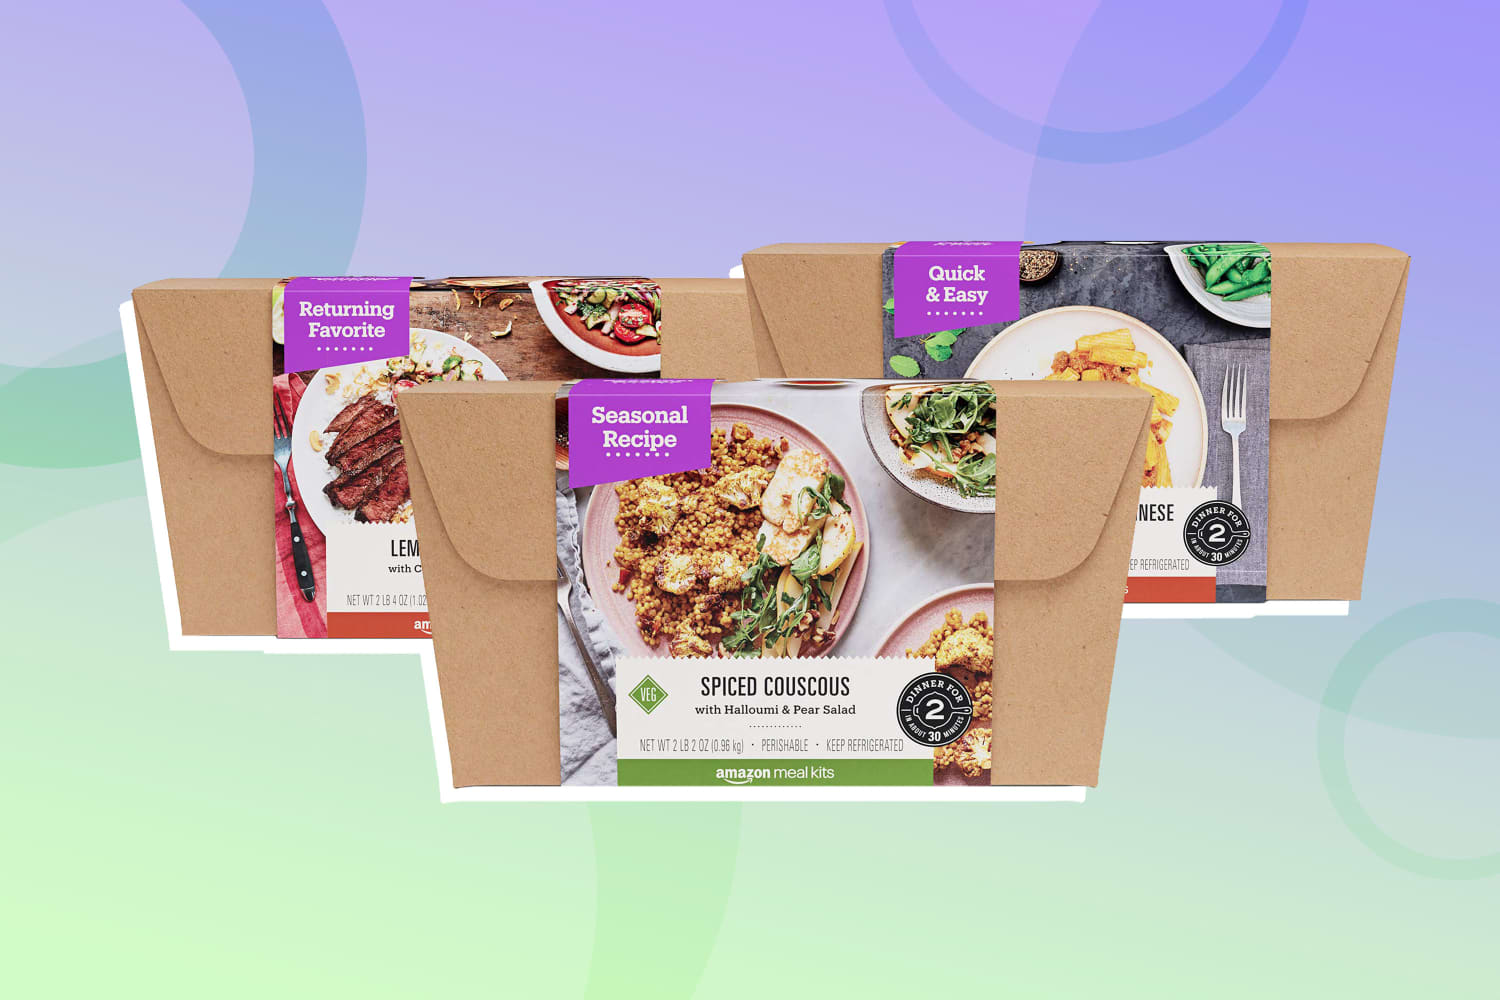 I Tried a Week's Worth of Amazon Meal Kits and Here's What I Thought